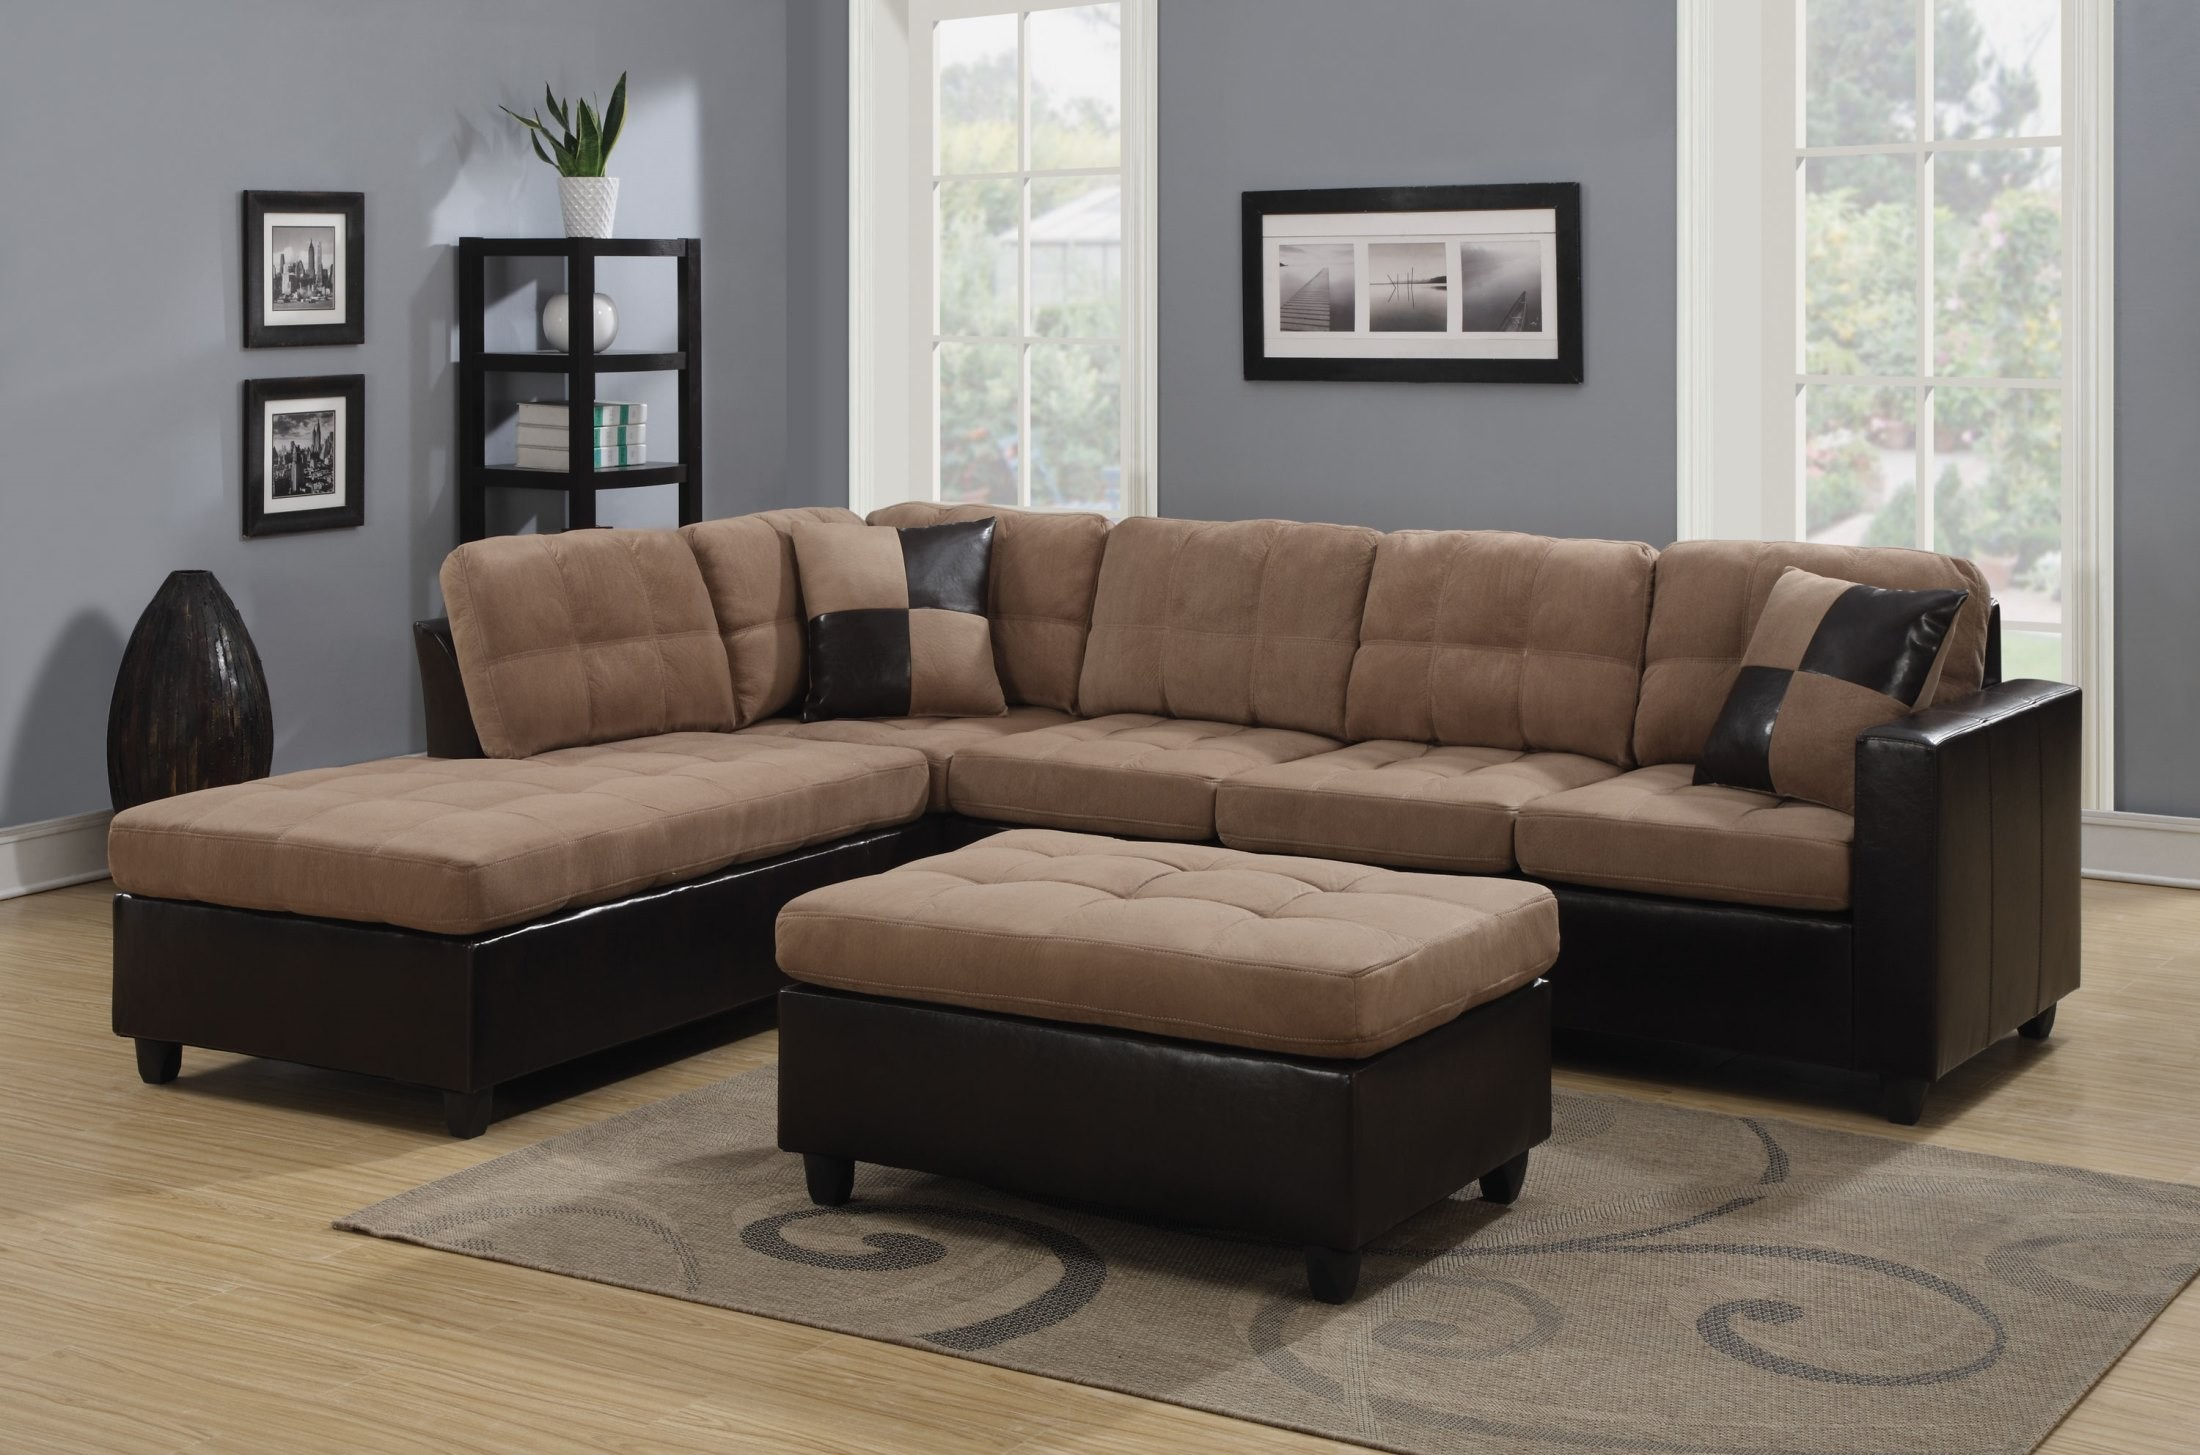 High Quality Coleman Furniture Good Looking